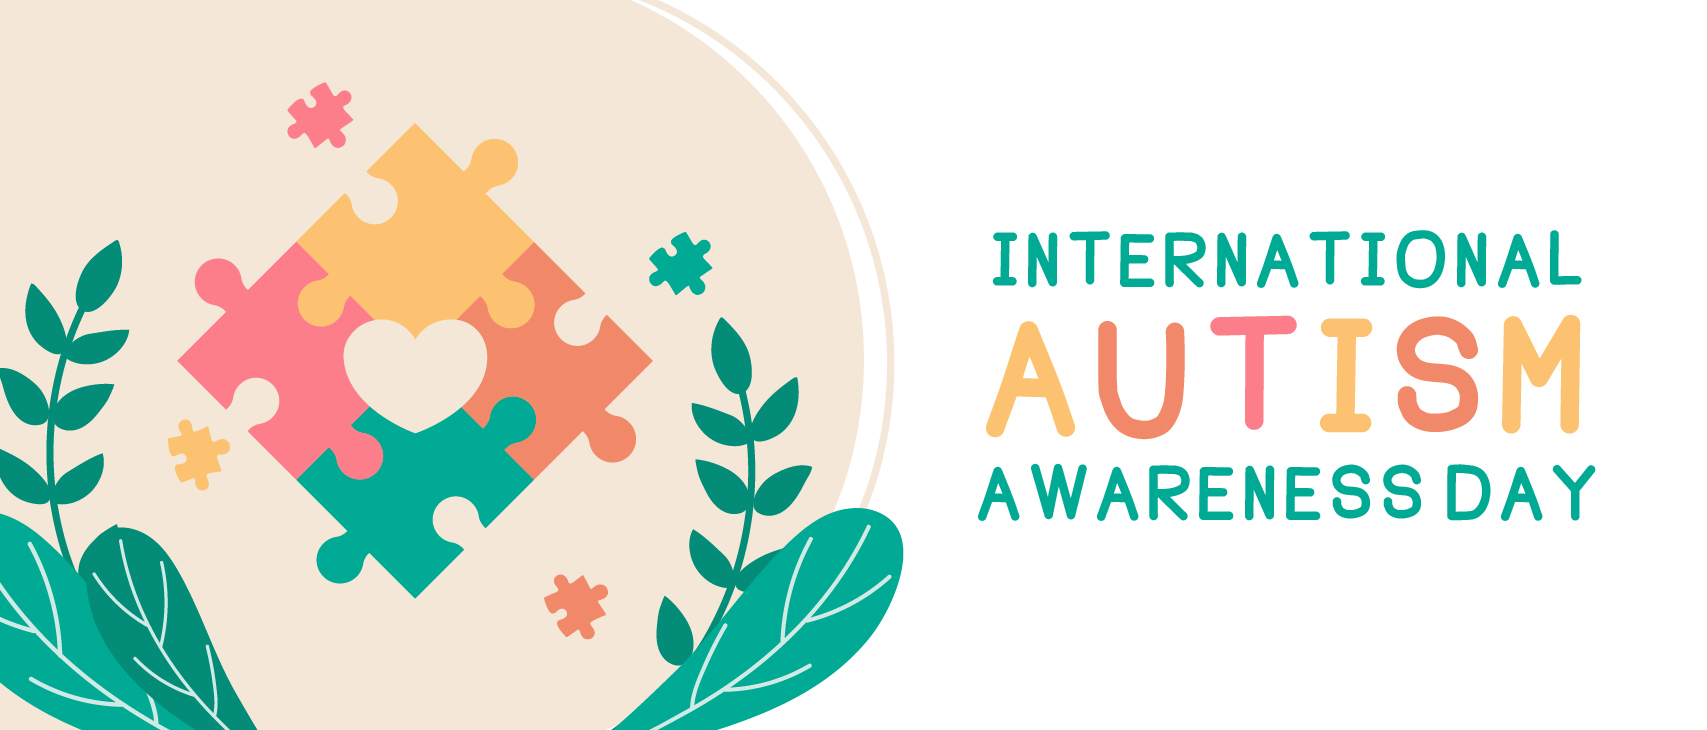 Why is Autism-awareness day important in India